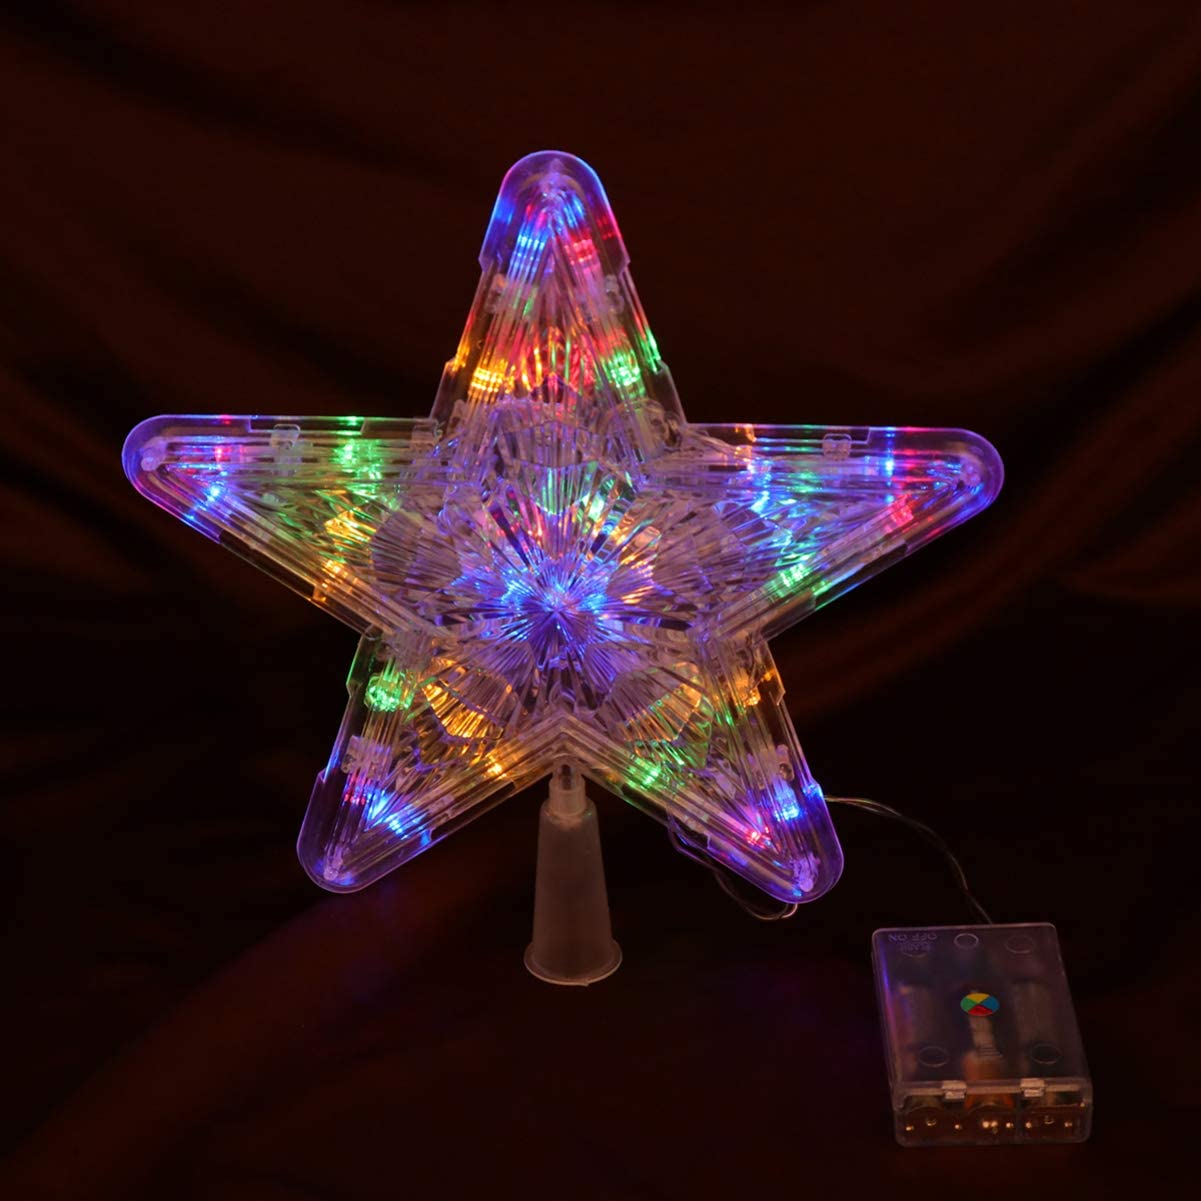 2Pcs Lighted Star Tree Topper Decor for Christmas Tree Banquet Party Outdoor Uonlytech Christmas Star Tree Topper Colorful,Size L